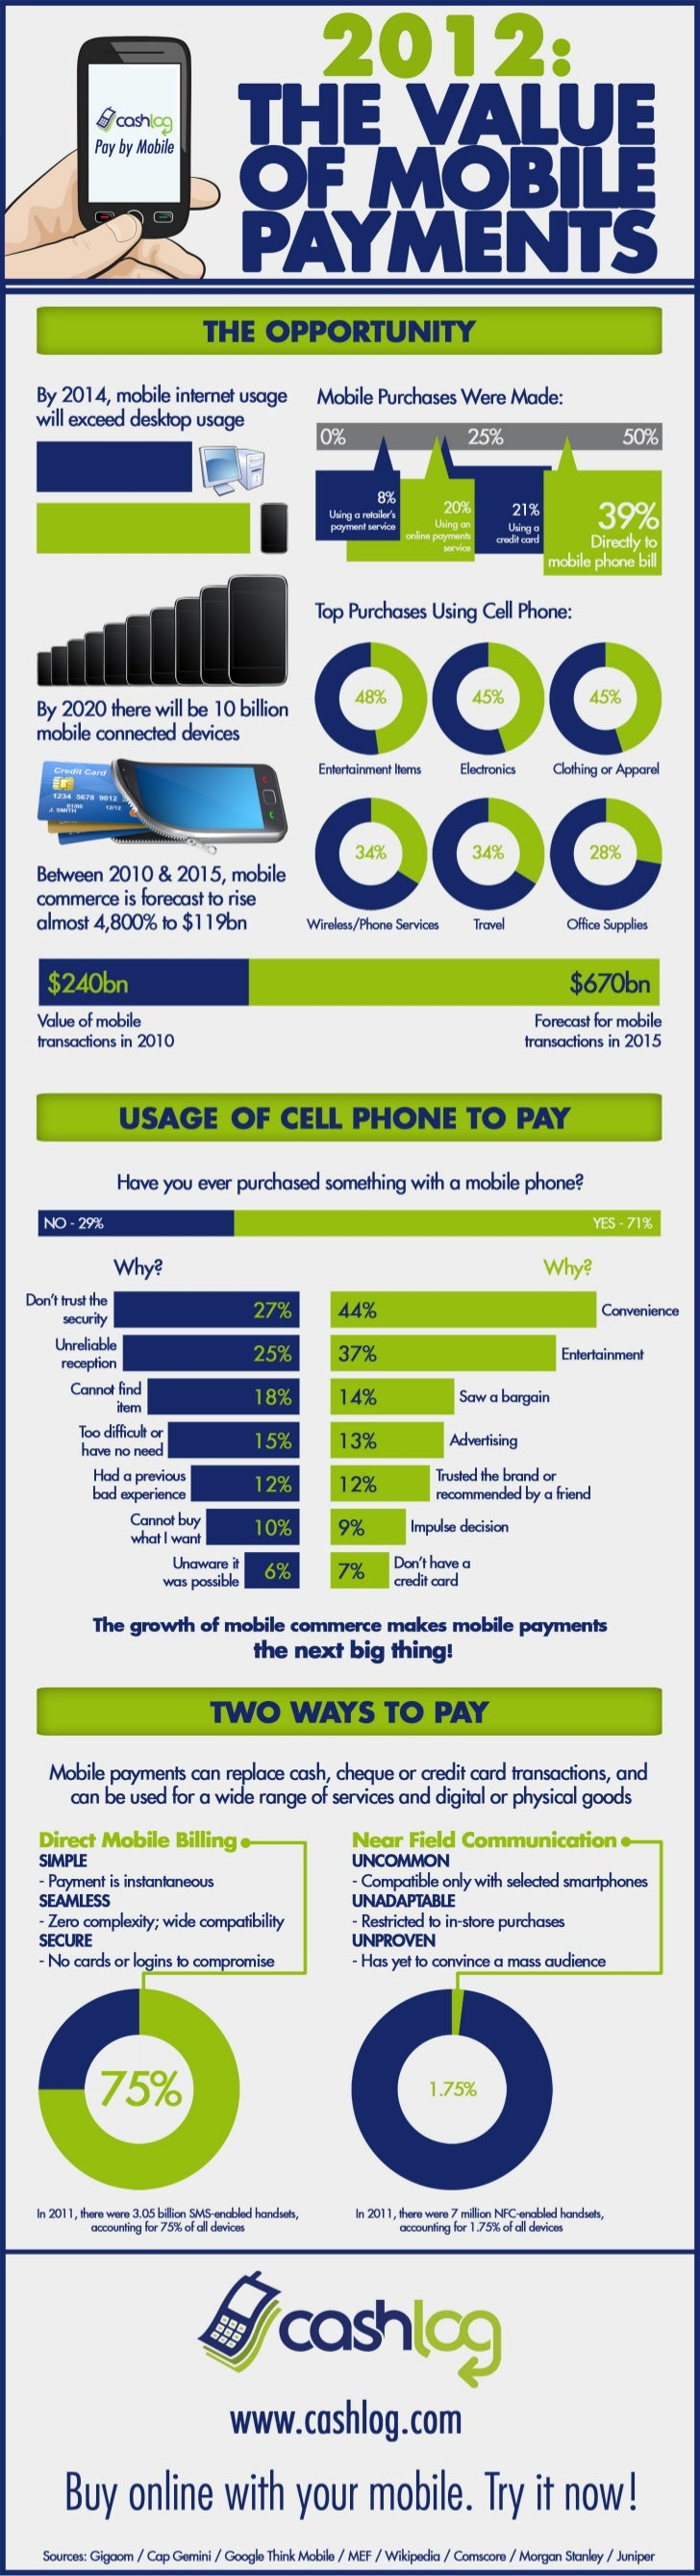 2012 - The Value of Mobile Payments Infographic [powered by Cashlog]